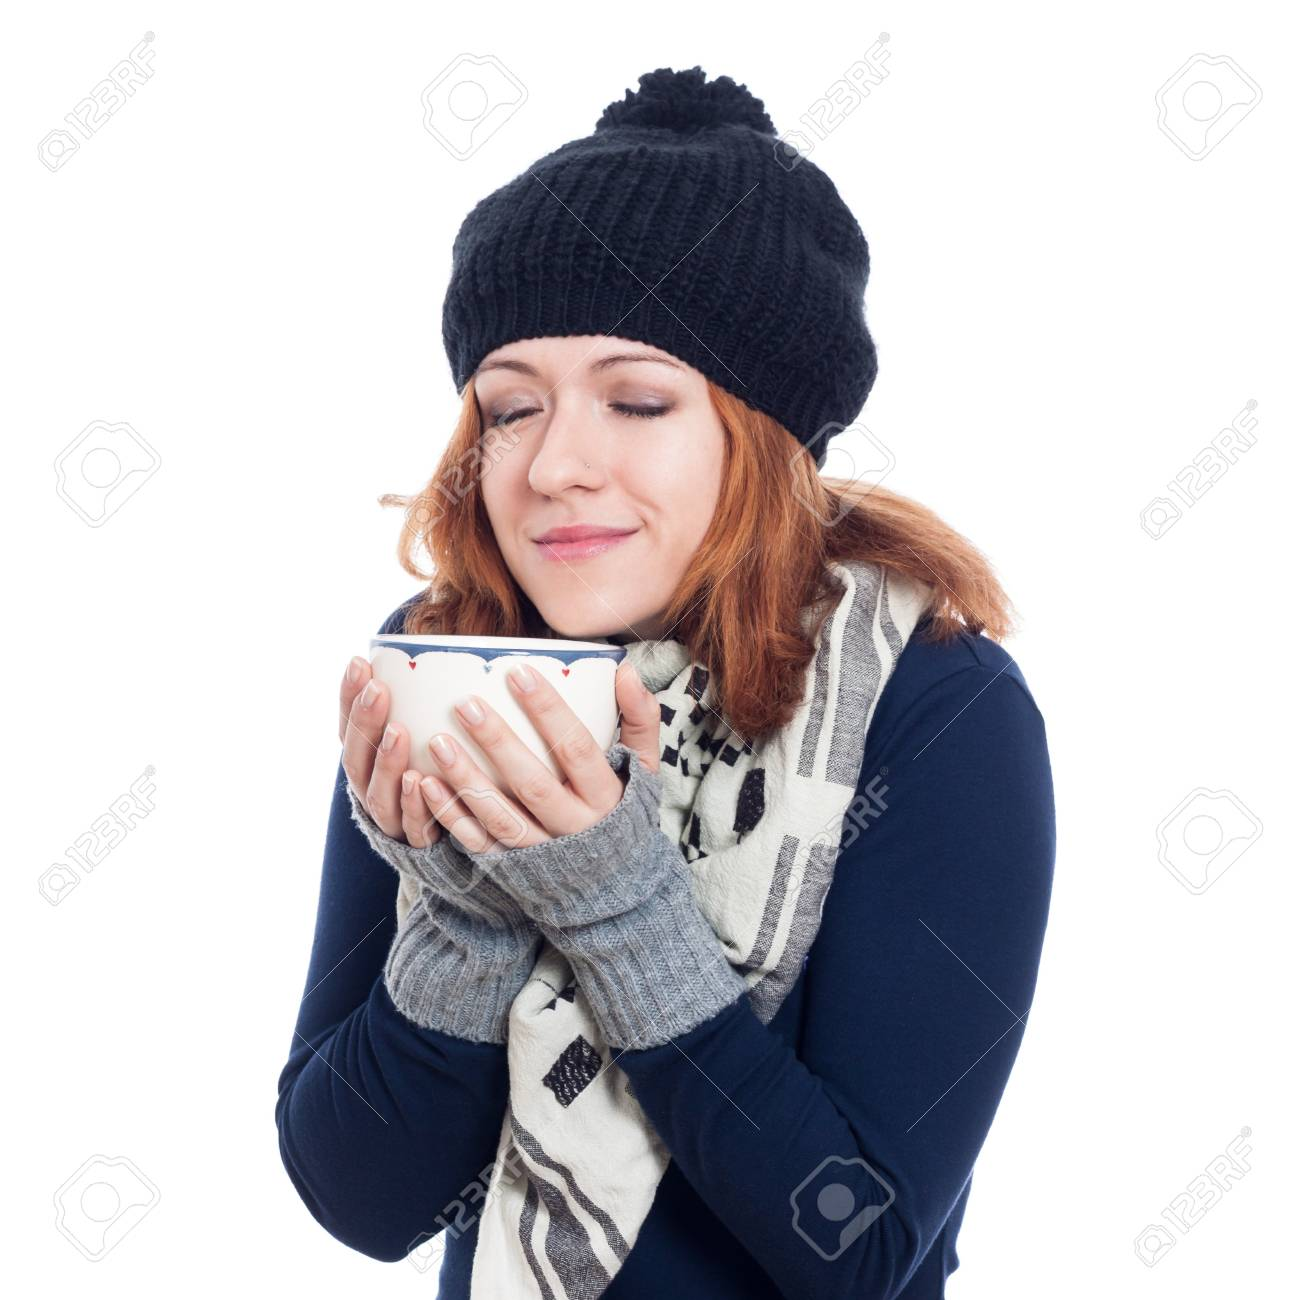 Happy woman in winter clothes enjoying hot drink, isolated on white background Stock Photo - 21579337